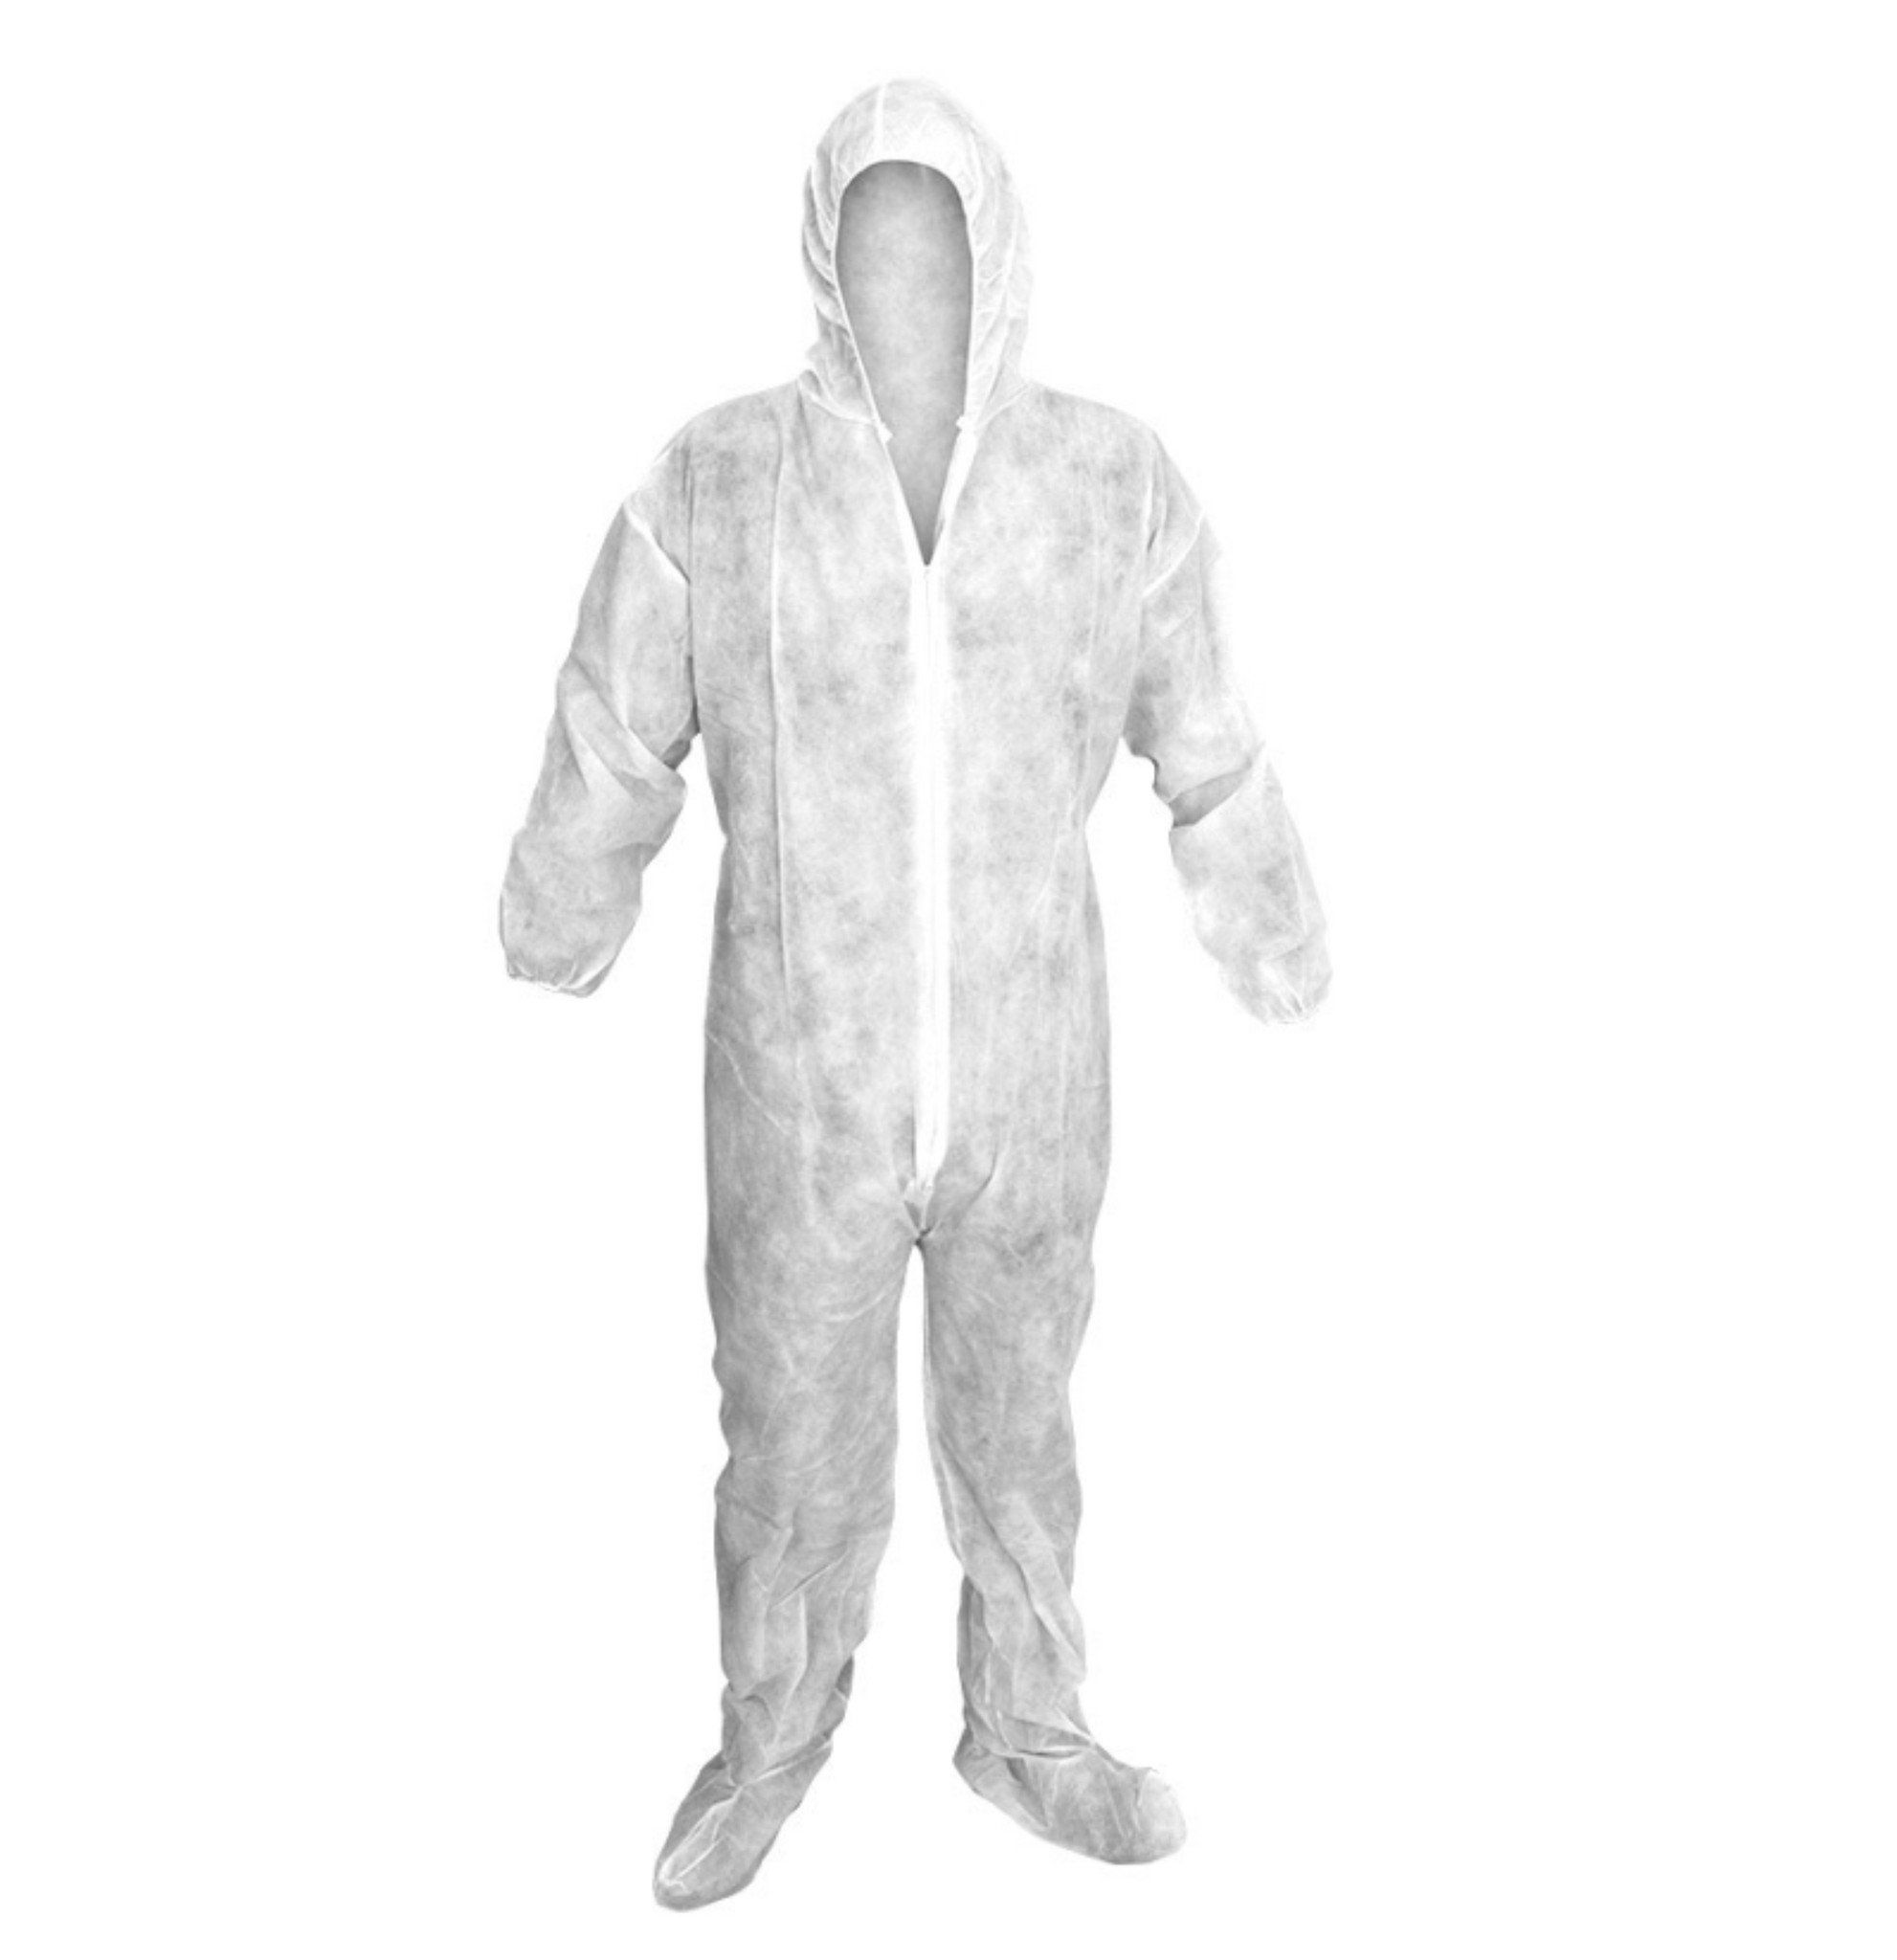 Polylite Disposable Full Body Coveralls - 50 Count